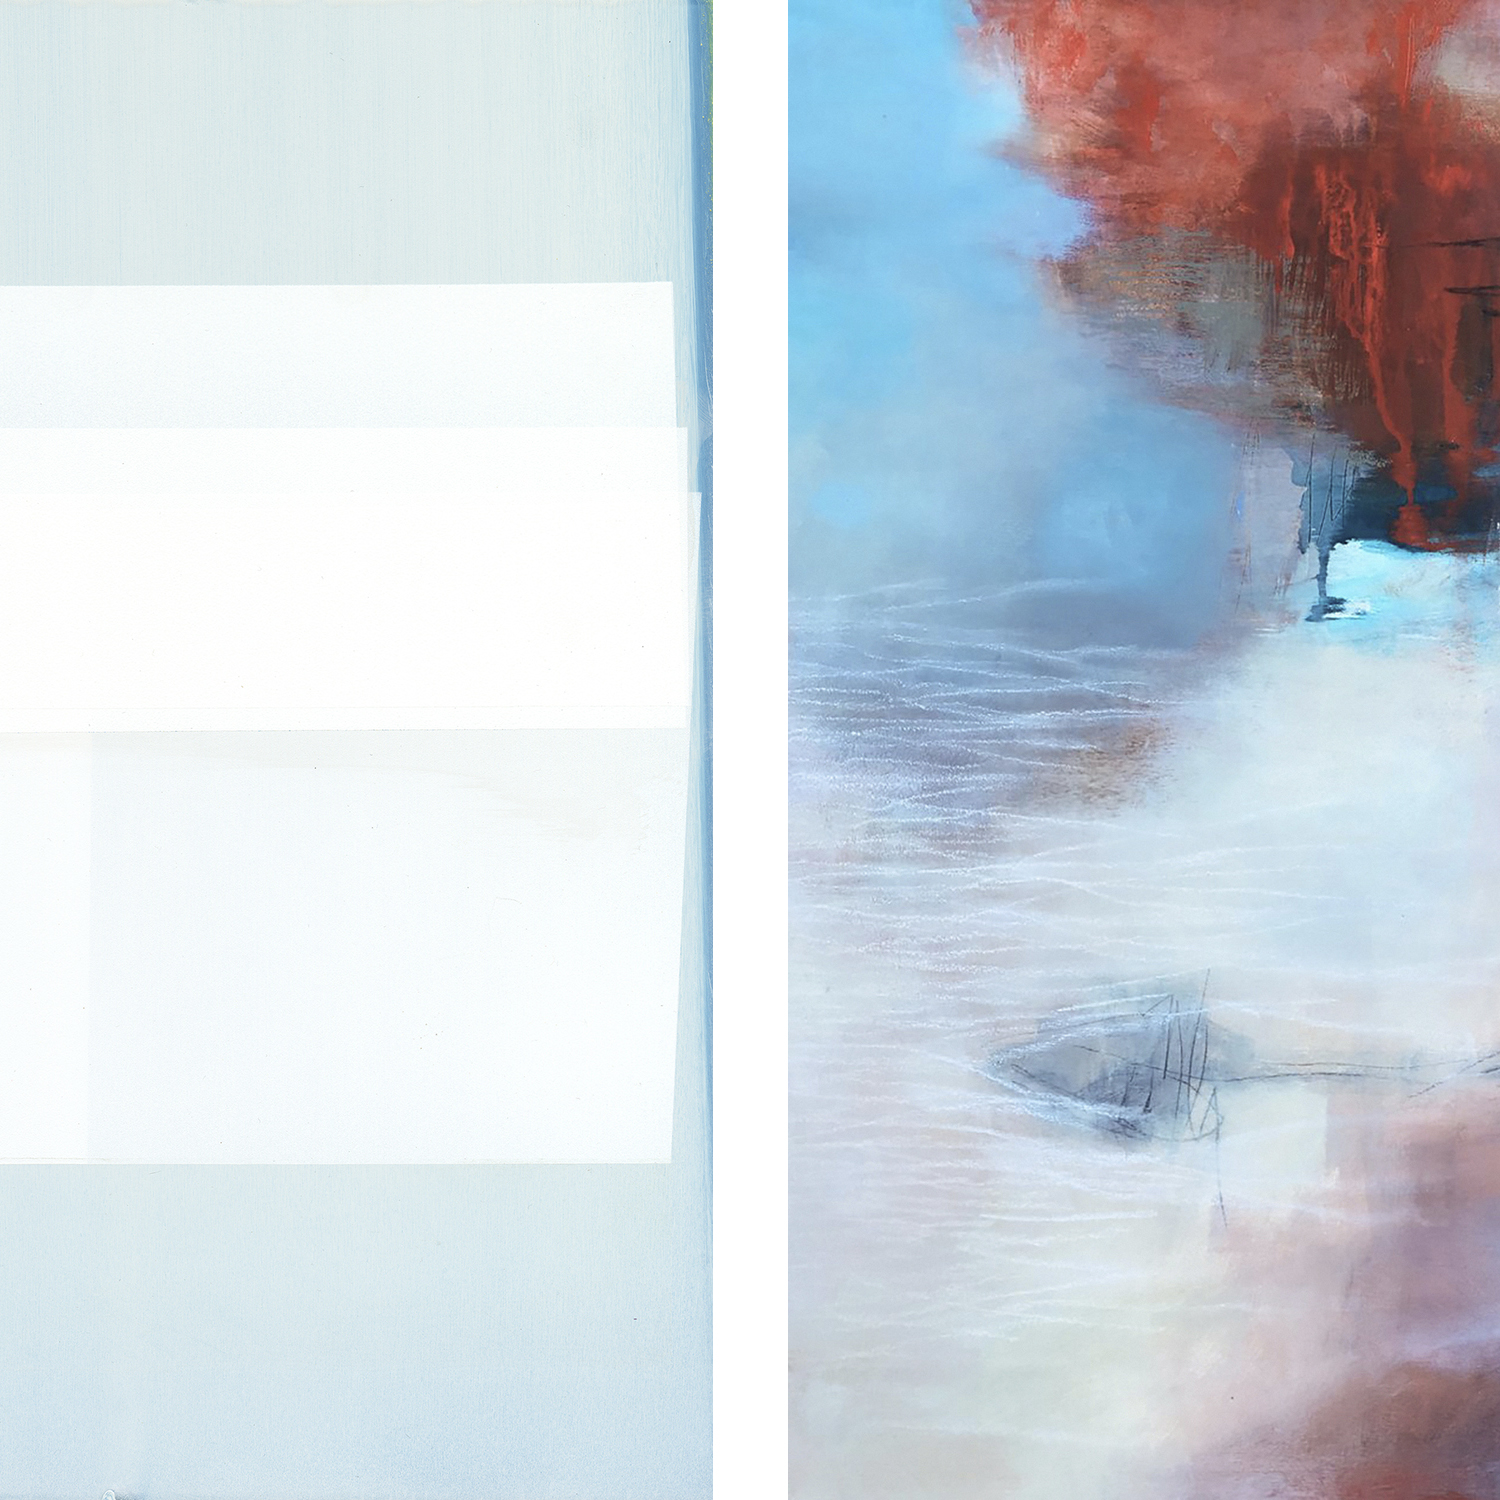 """Portion of """"Burnside (Northern Portrait)"""" by Jeffrey Cortland Jones (left) and portion of """"Without Words"""" by Sara Pittman (right)"""